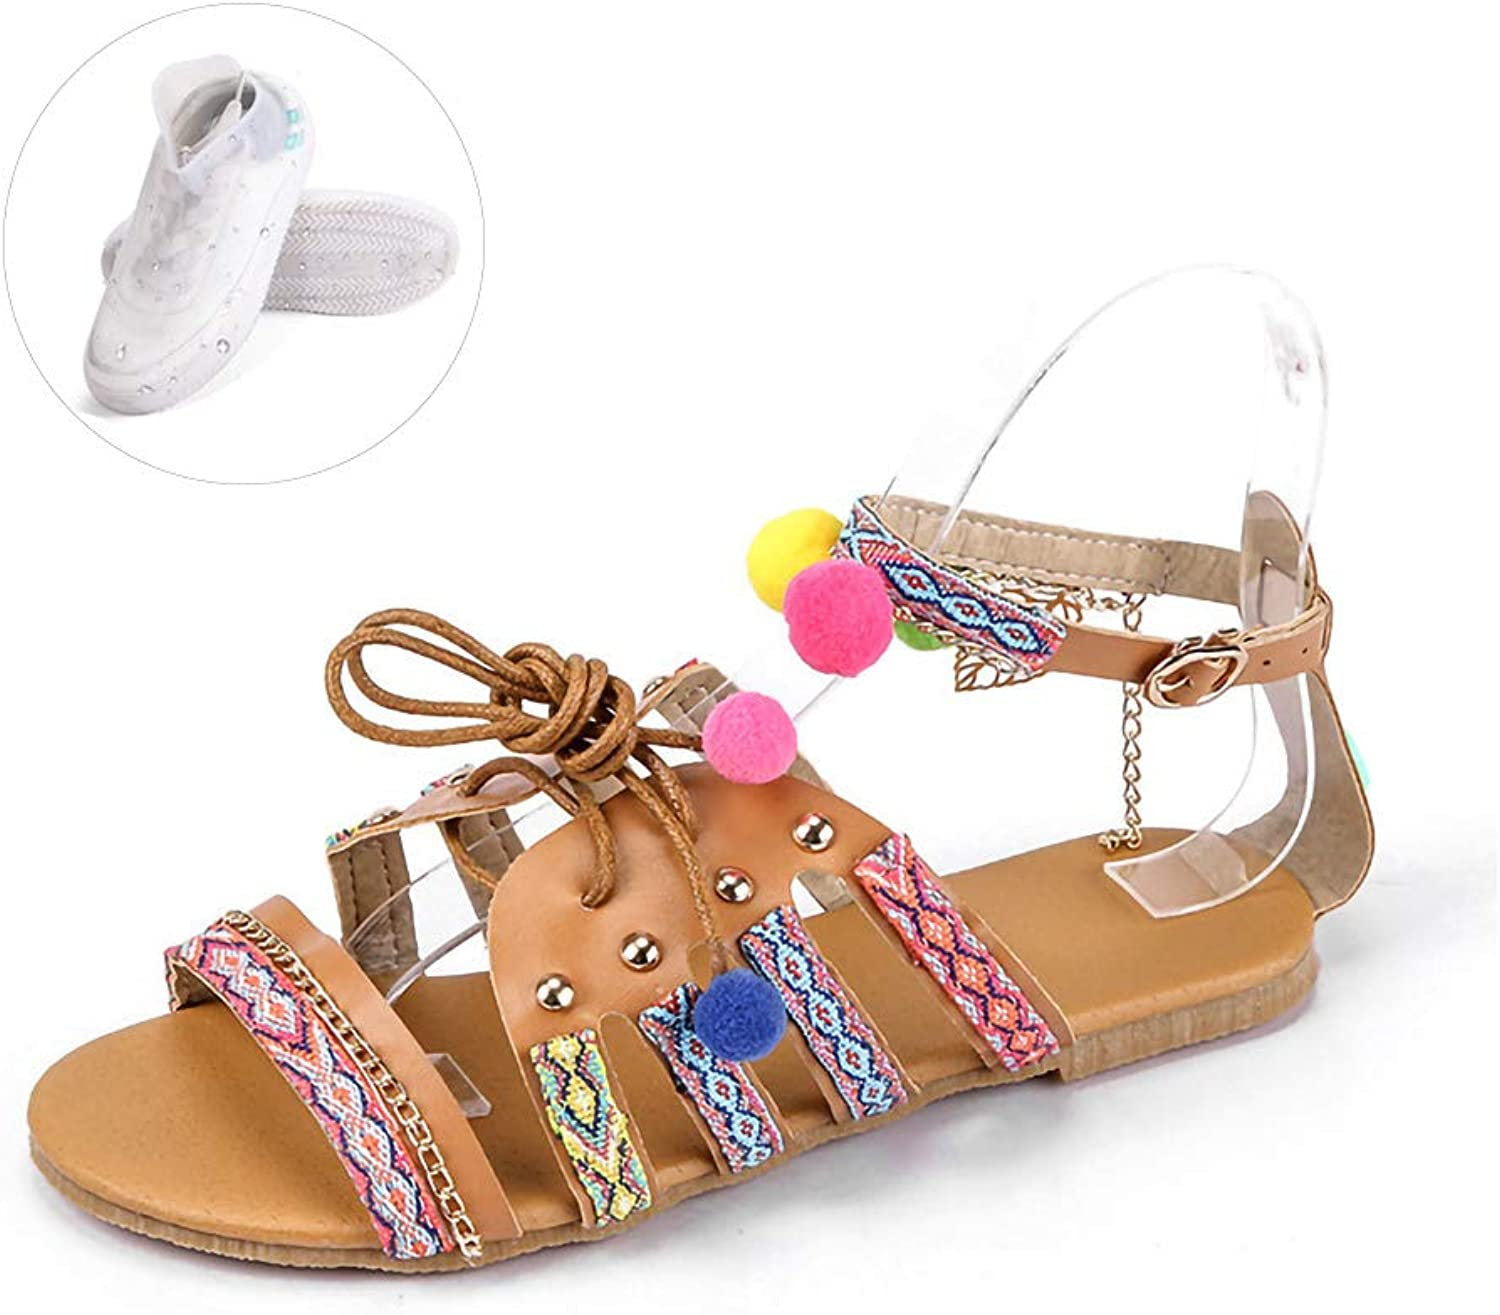 Ethnic Bohemian Summer Women Sandals, Gladiator Roman Strappy Embroidered shoes Woman Flat shoes Plus Size 35-43, with shoes Cover,Brown,7.5US